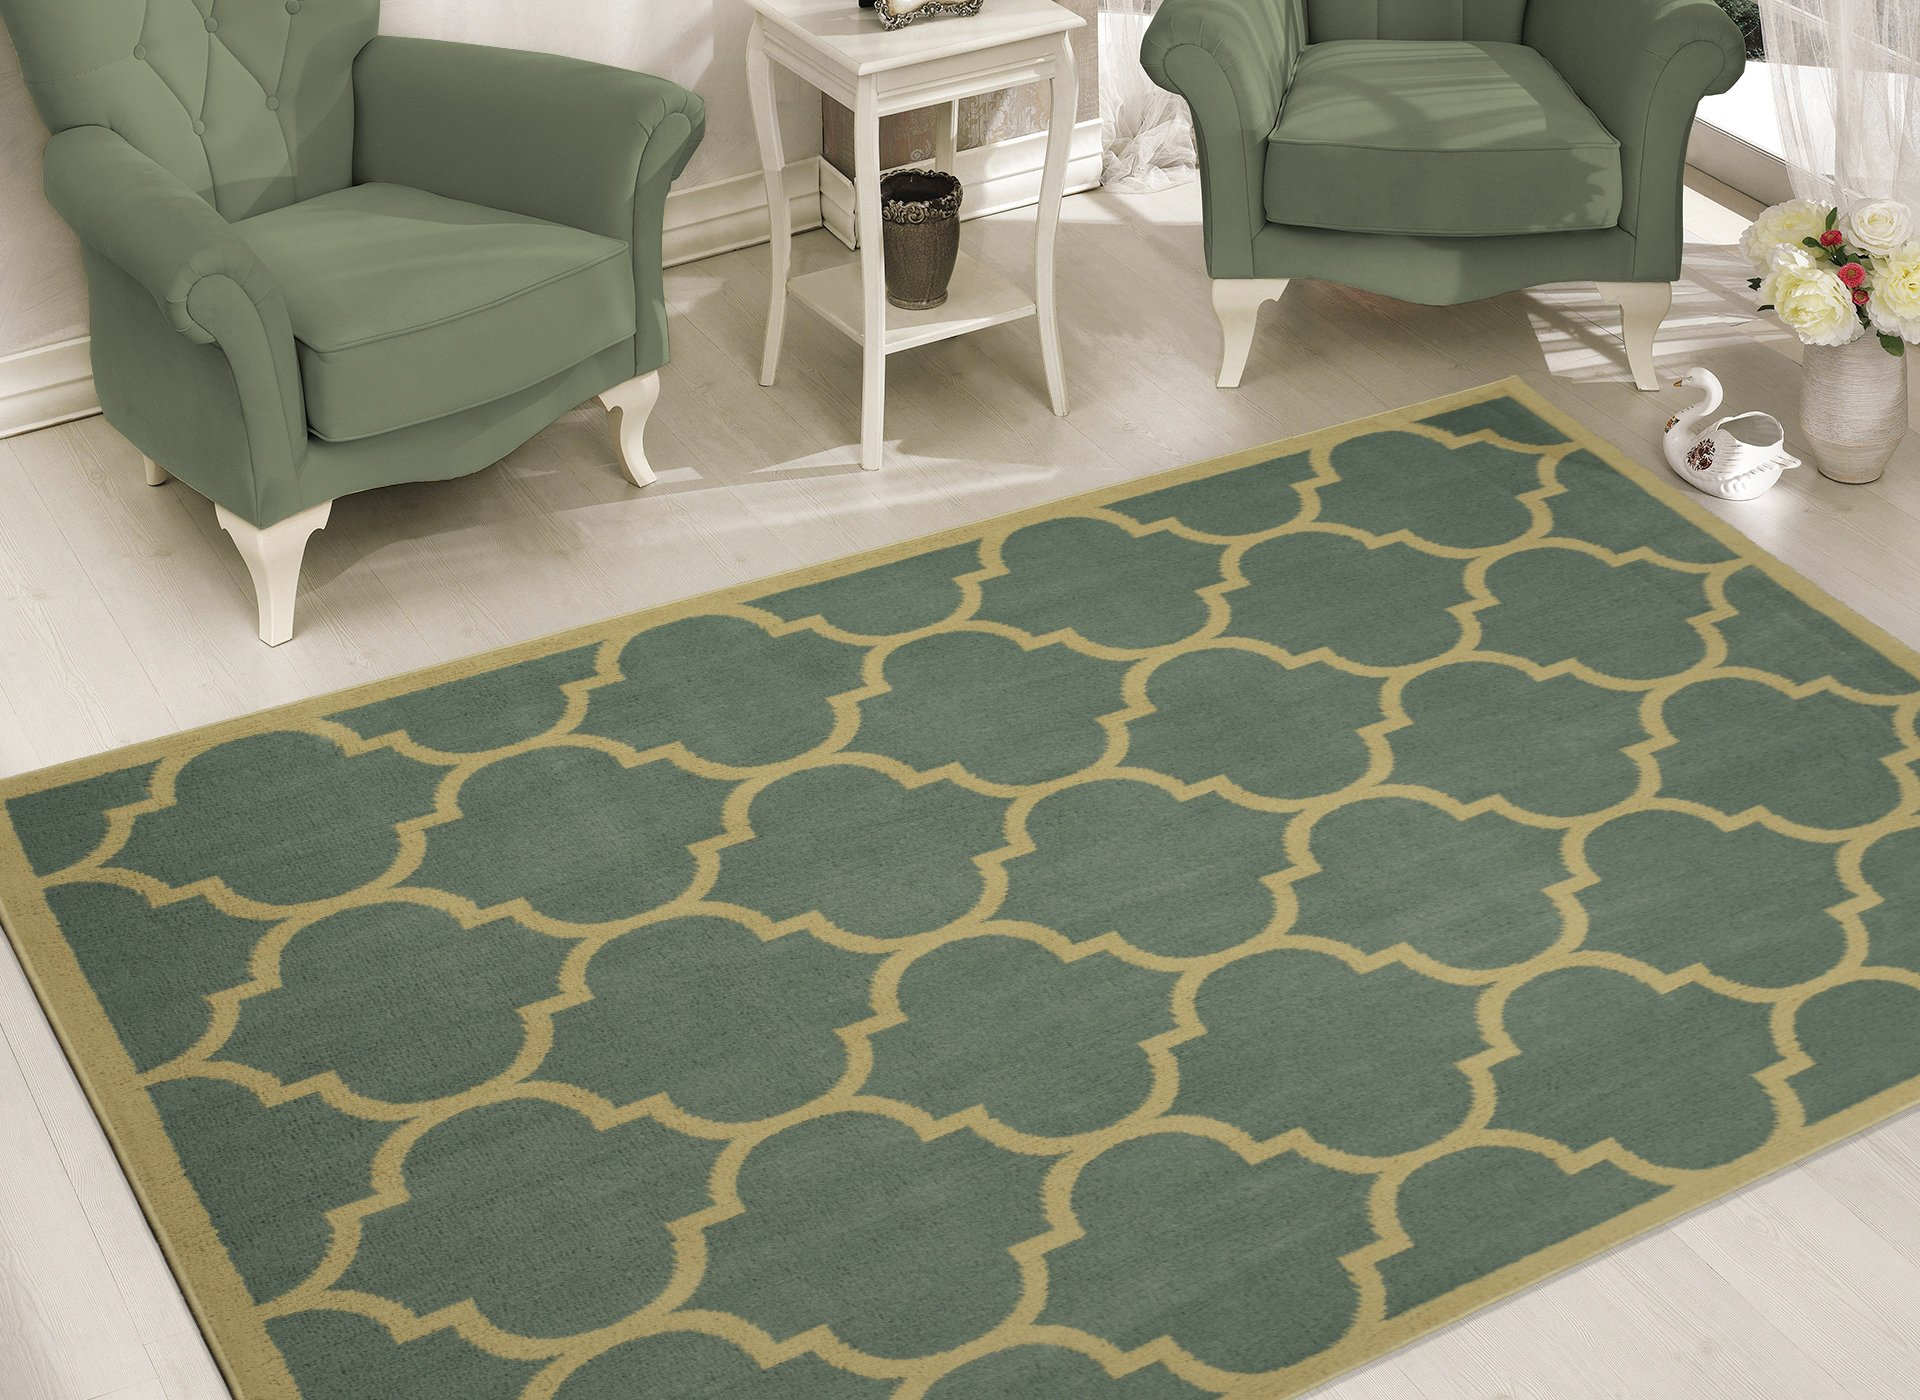 Sweet Home Stores Clifton Collection Moroccan Trellis Design Area Rug, 7'10'' X 9'10'', Seafoam by Sweet Home Stores (Image #1)